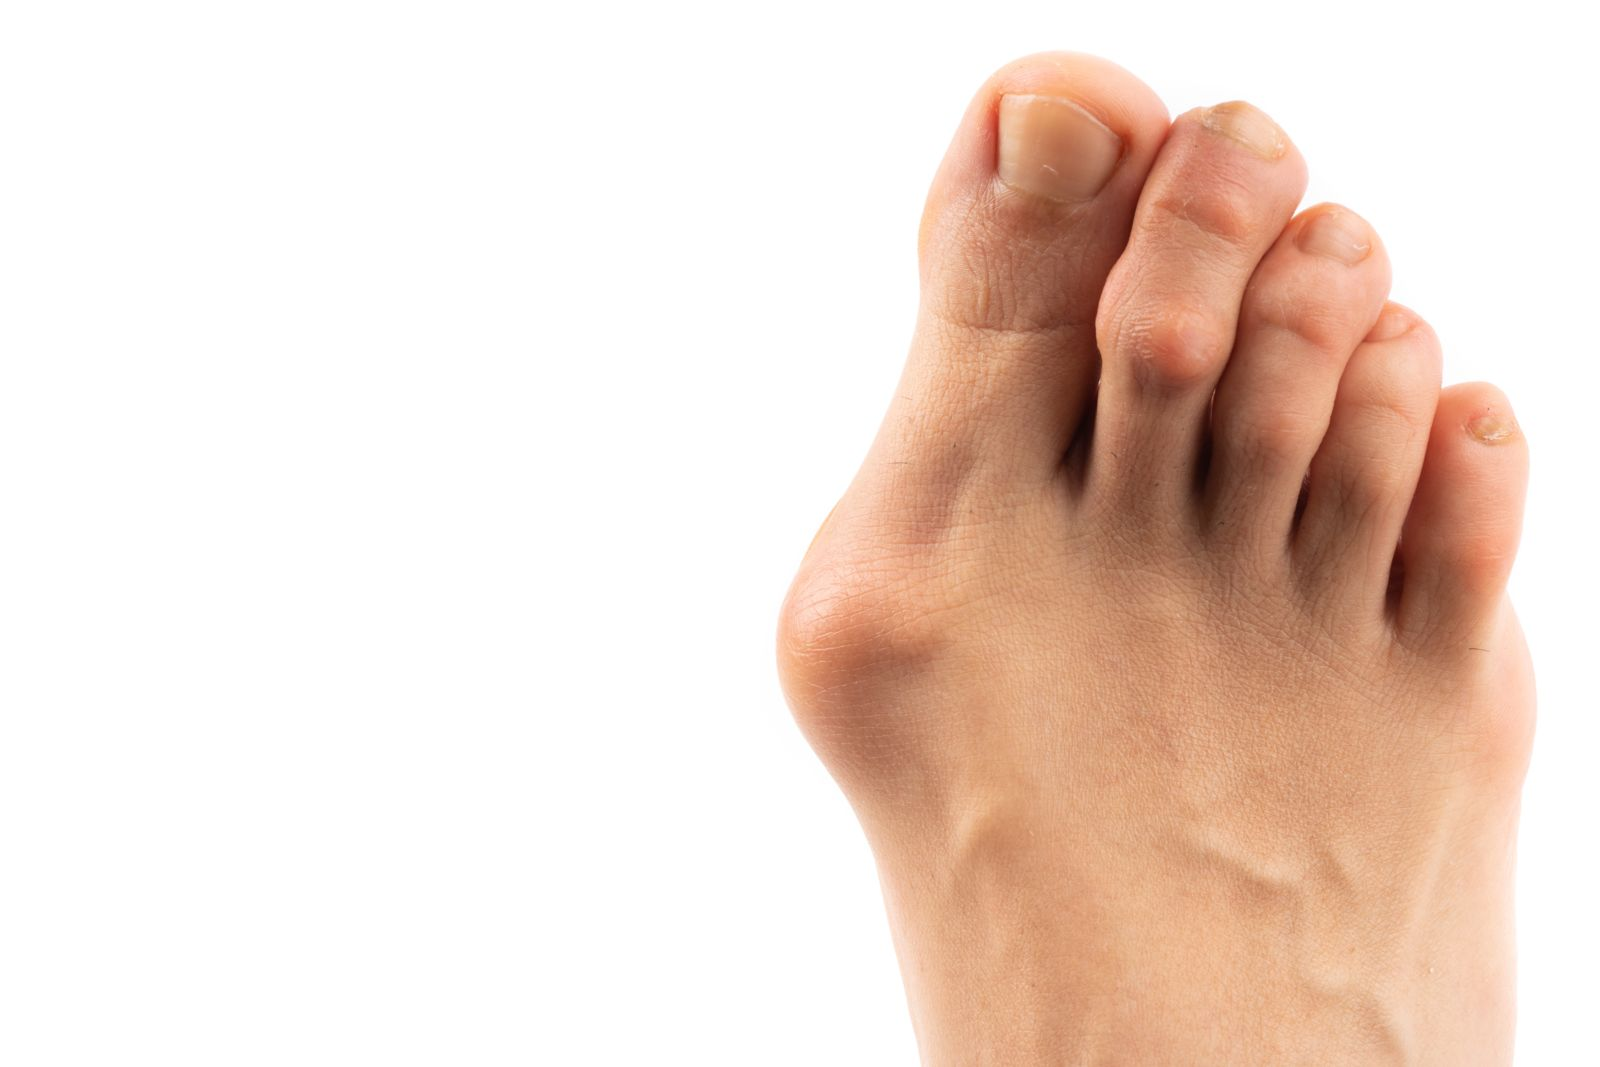 Houston podiatrist treats painful bunions